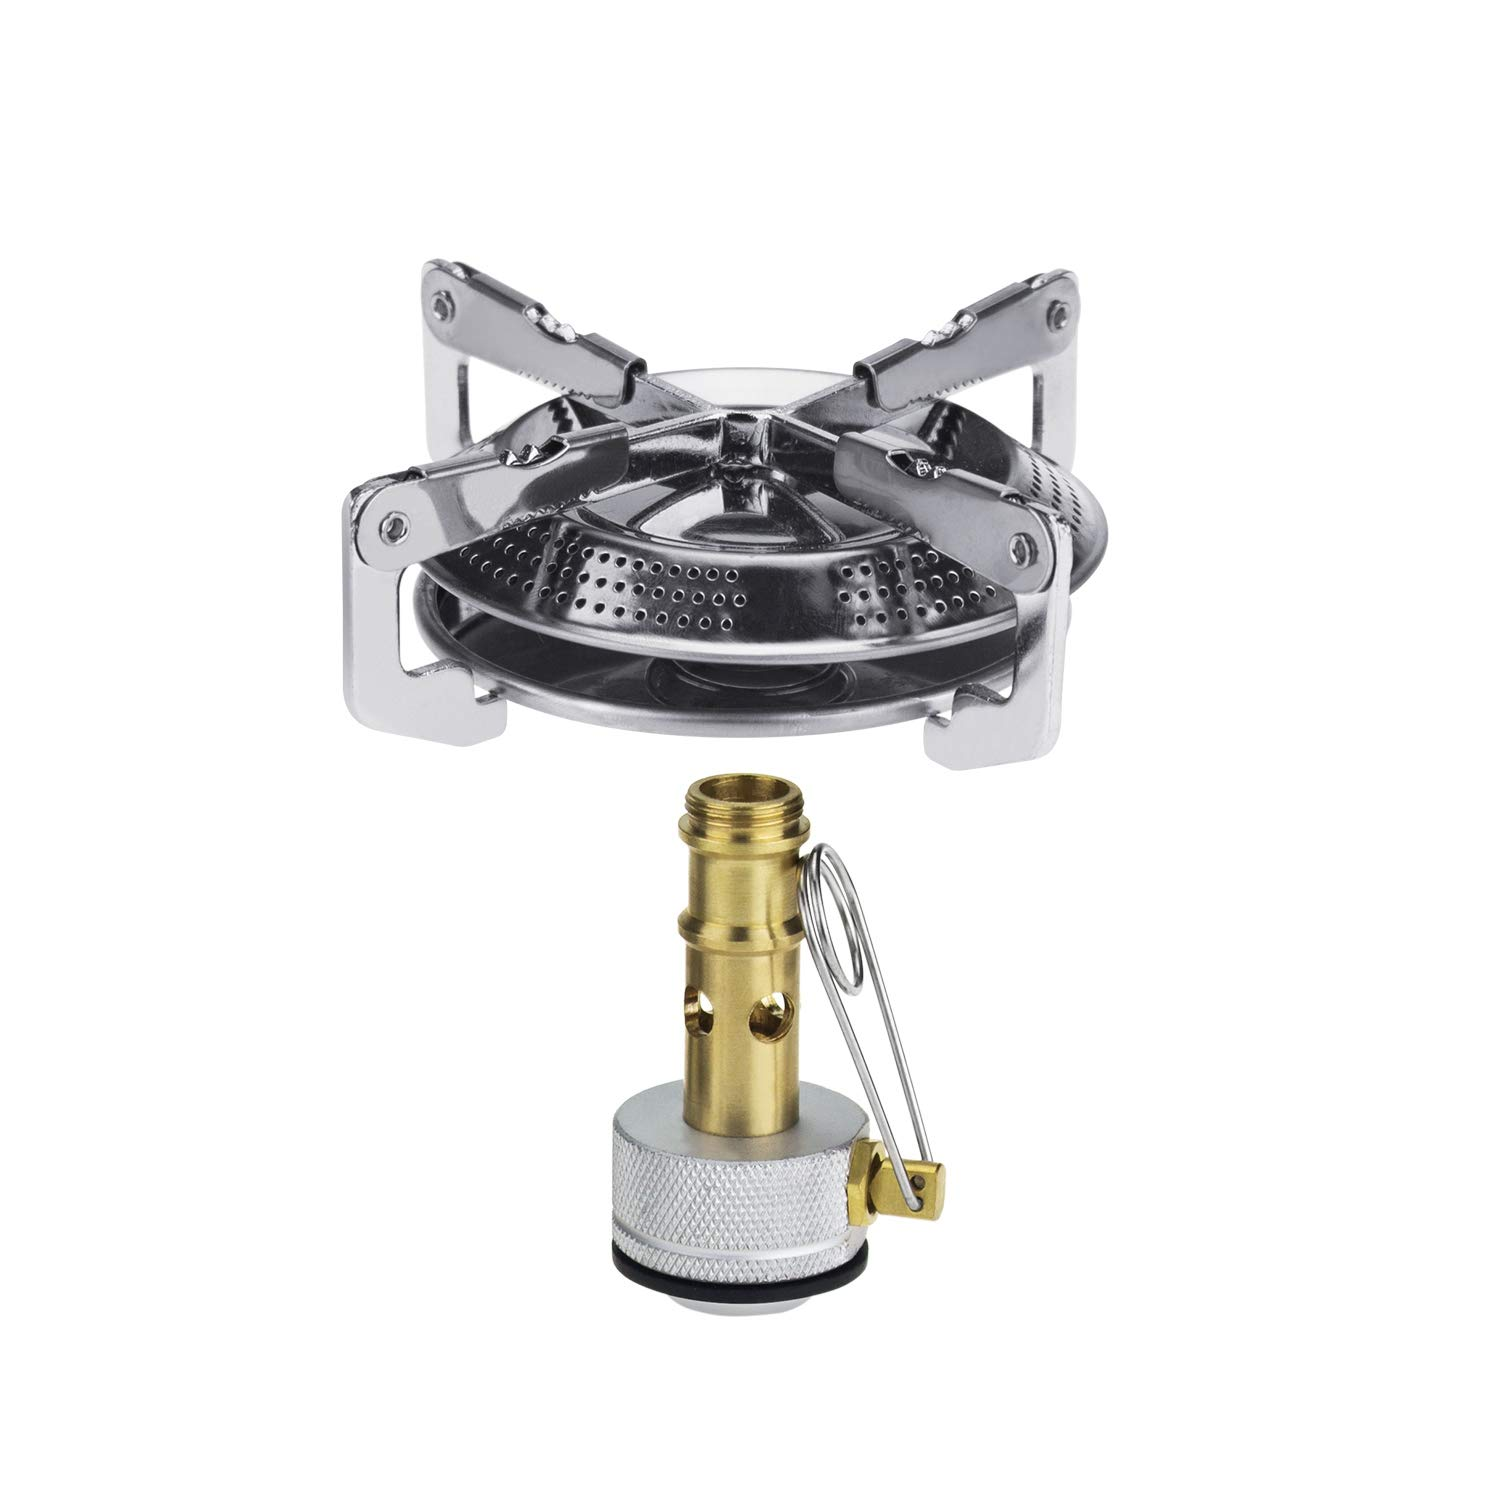 SODIAL Outdoor Camping Portable Stainless Steel Gas Stove Camping Folding Bracket Stove Camping Ultra Light Gas Stove Head Picnic Barbecue Camping Equipment